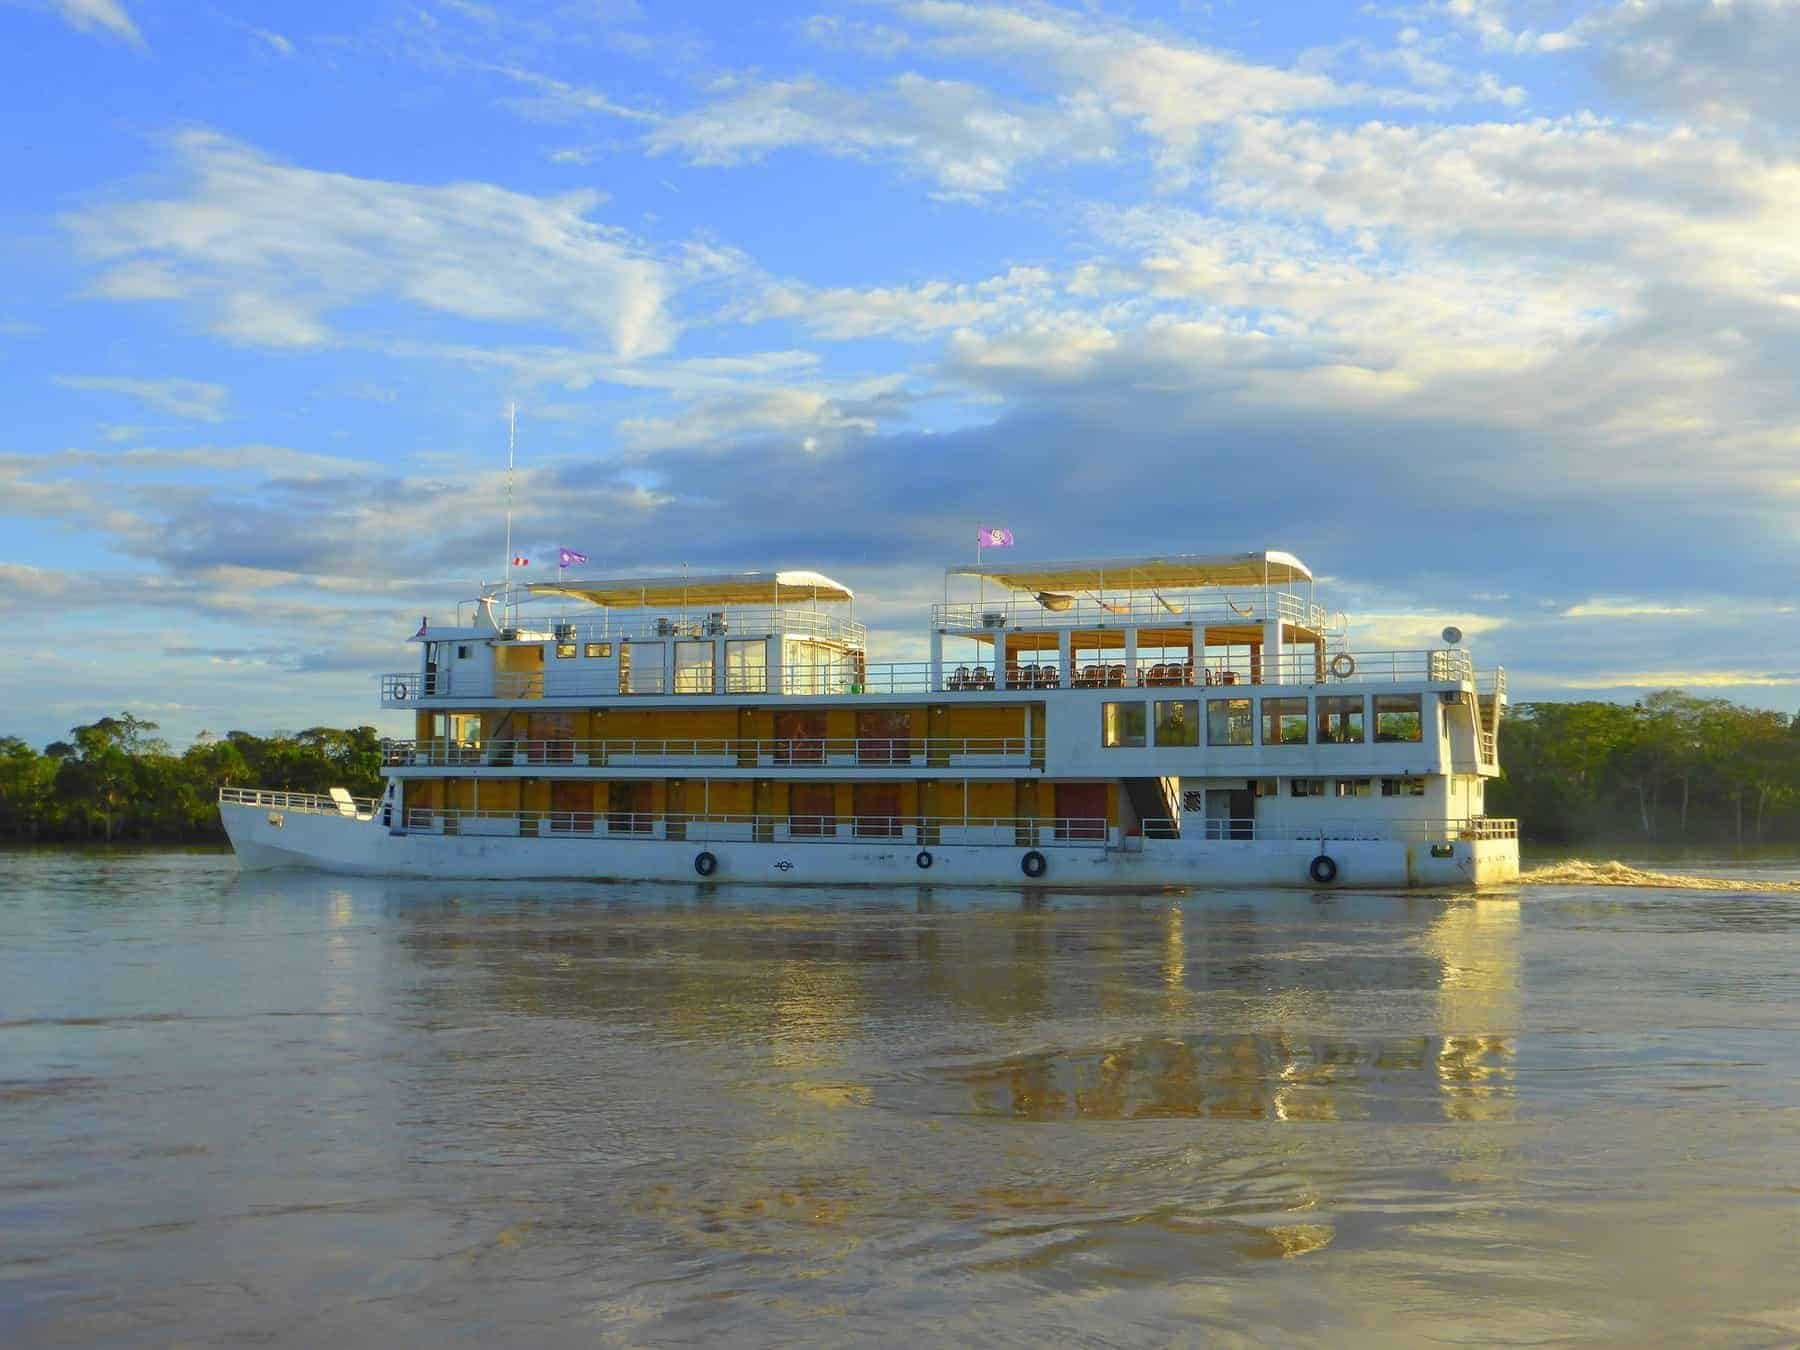 The riverboat Queen Violeta cruising along the River Amazon in Peru.